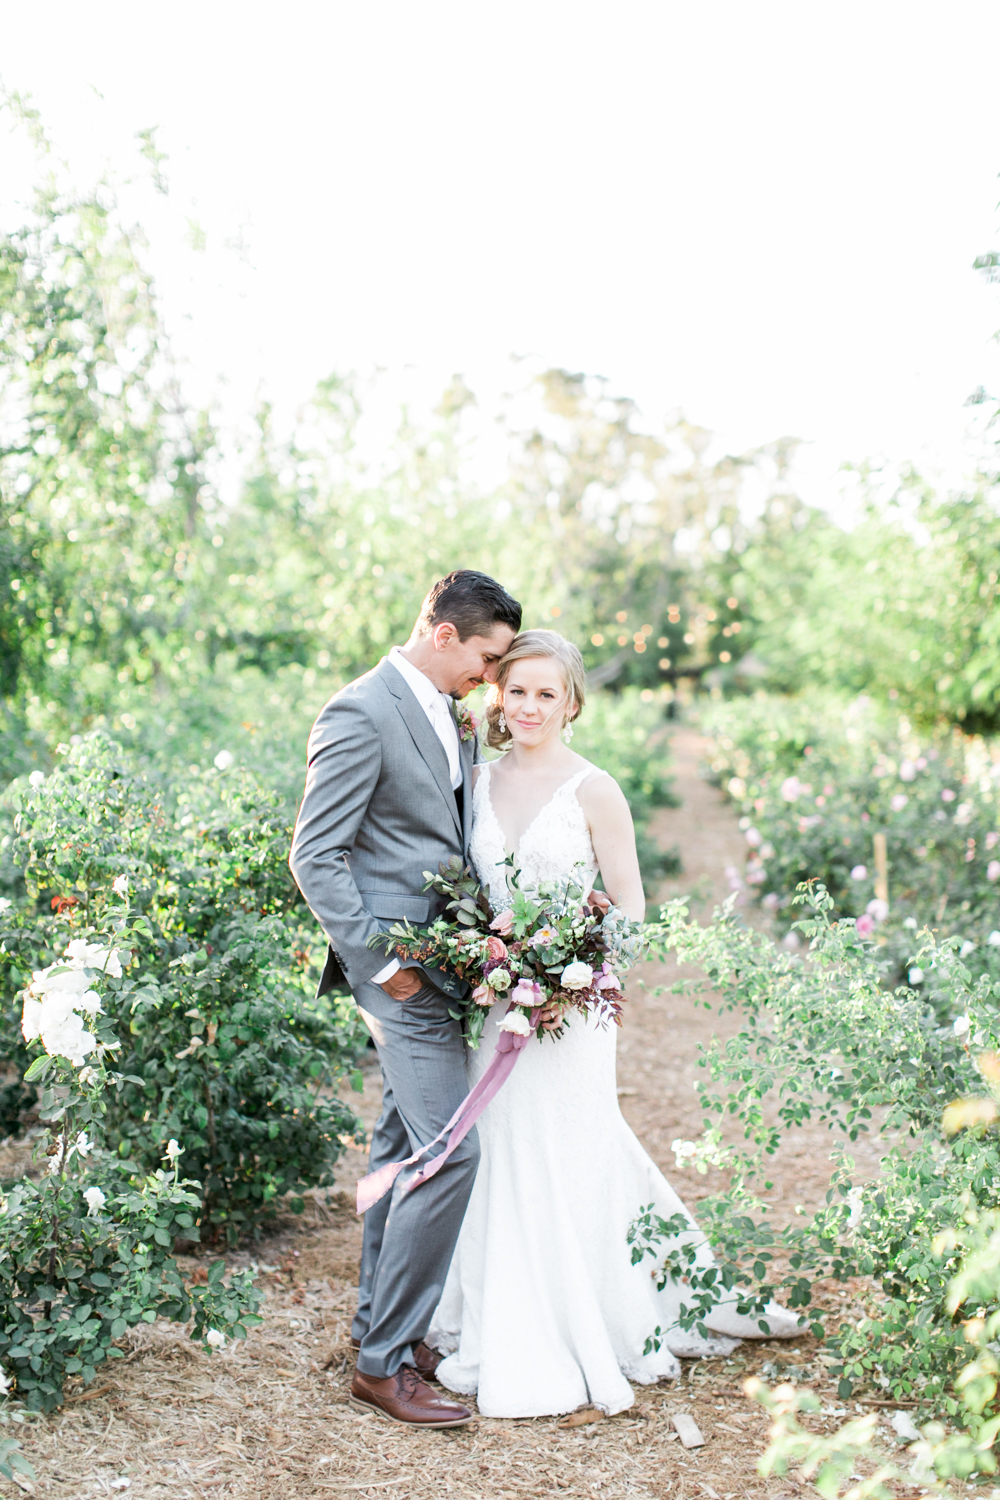 Bride and groom holding signature cocktails at Villa de Amore wedding by Temecula wedding photographer, Lovisa Photo.